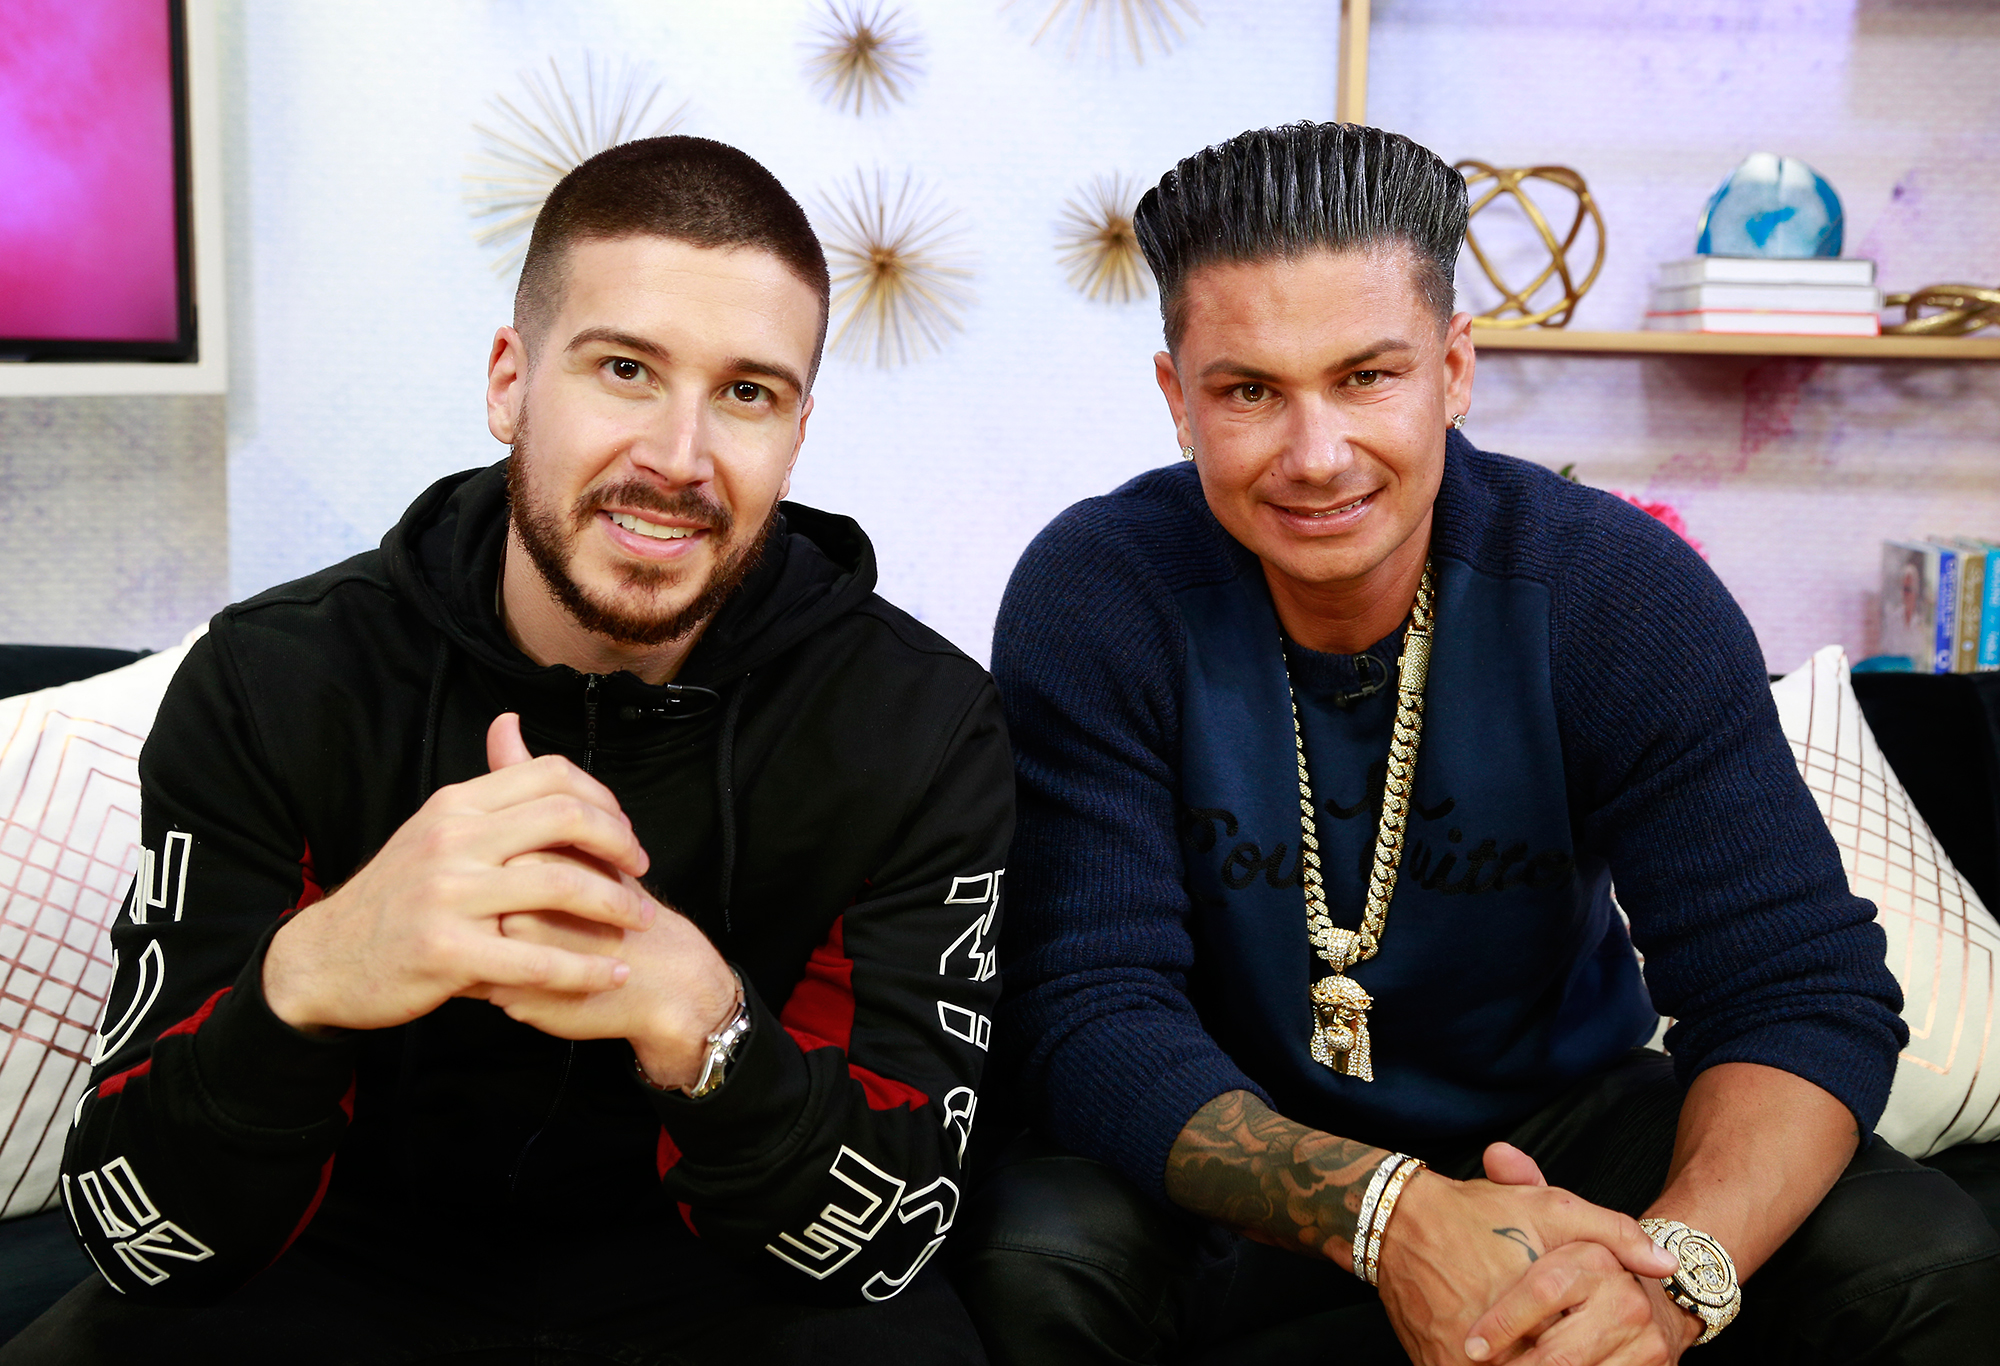 Vinny Guadagnino and DJ Pauly D Talk Turnoffs - Vinny Guadagnino and Pauly D.